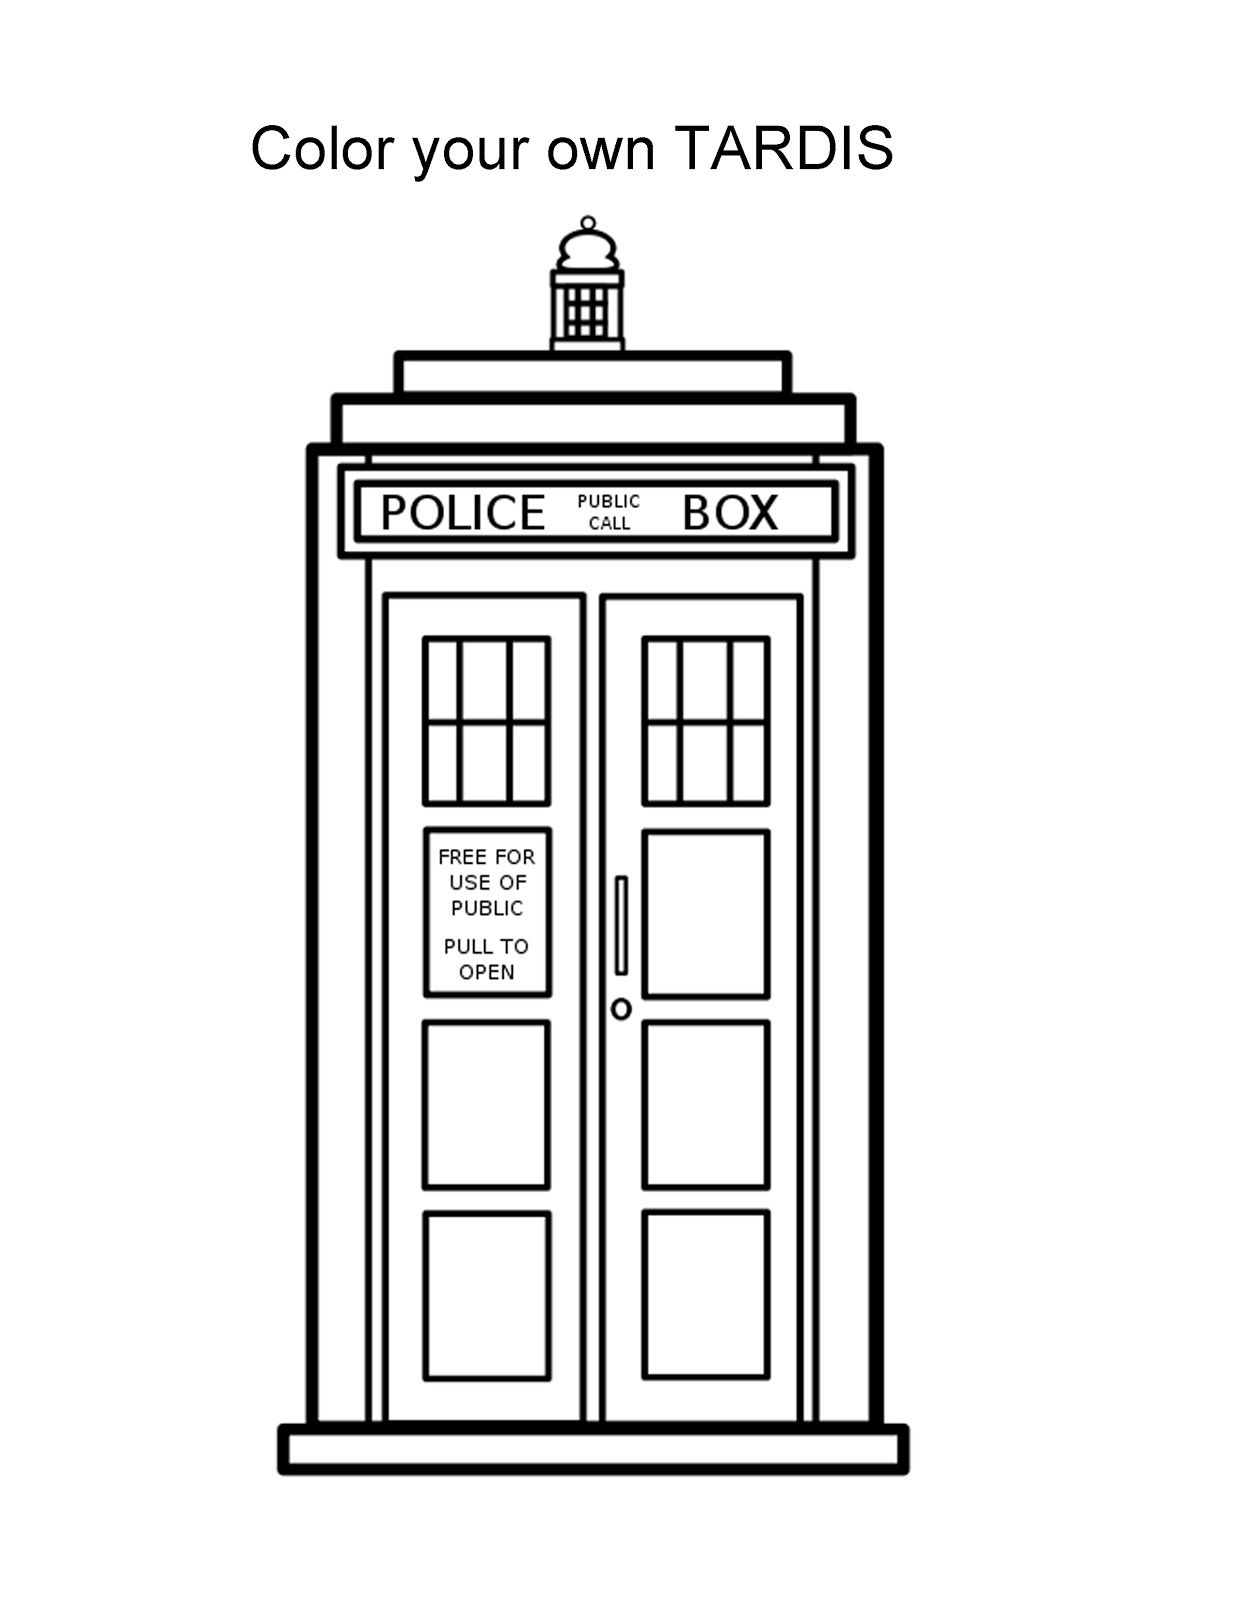 Tardis clipart. Clip art for the